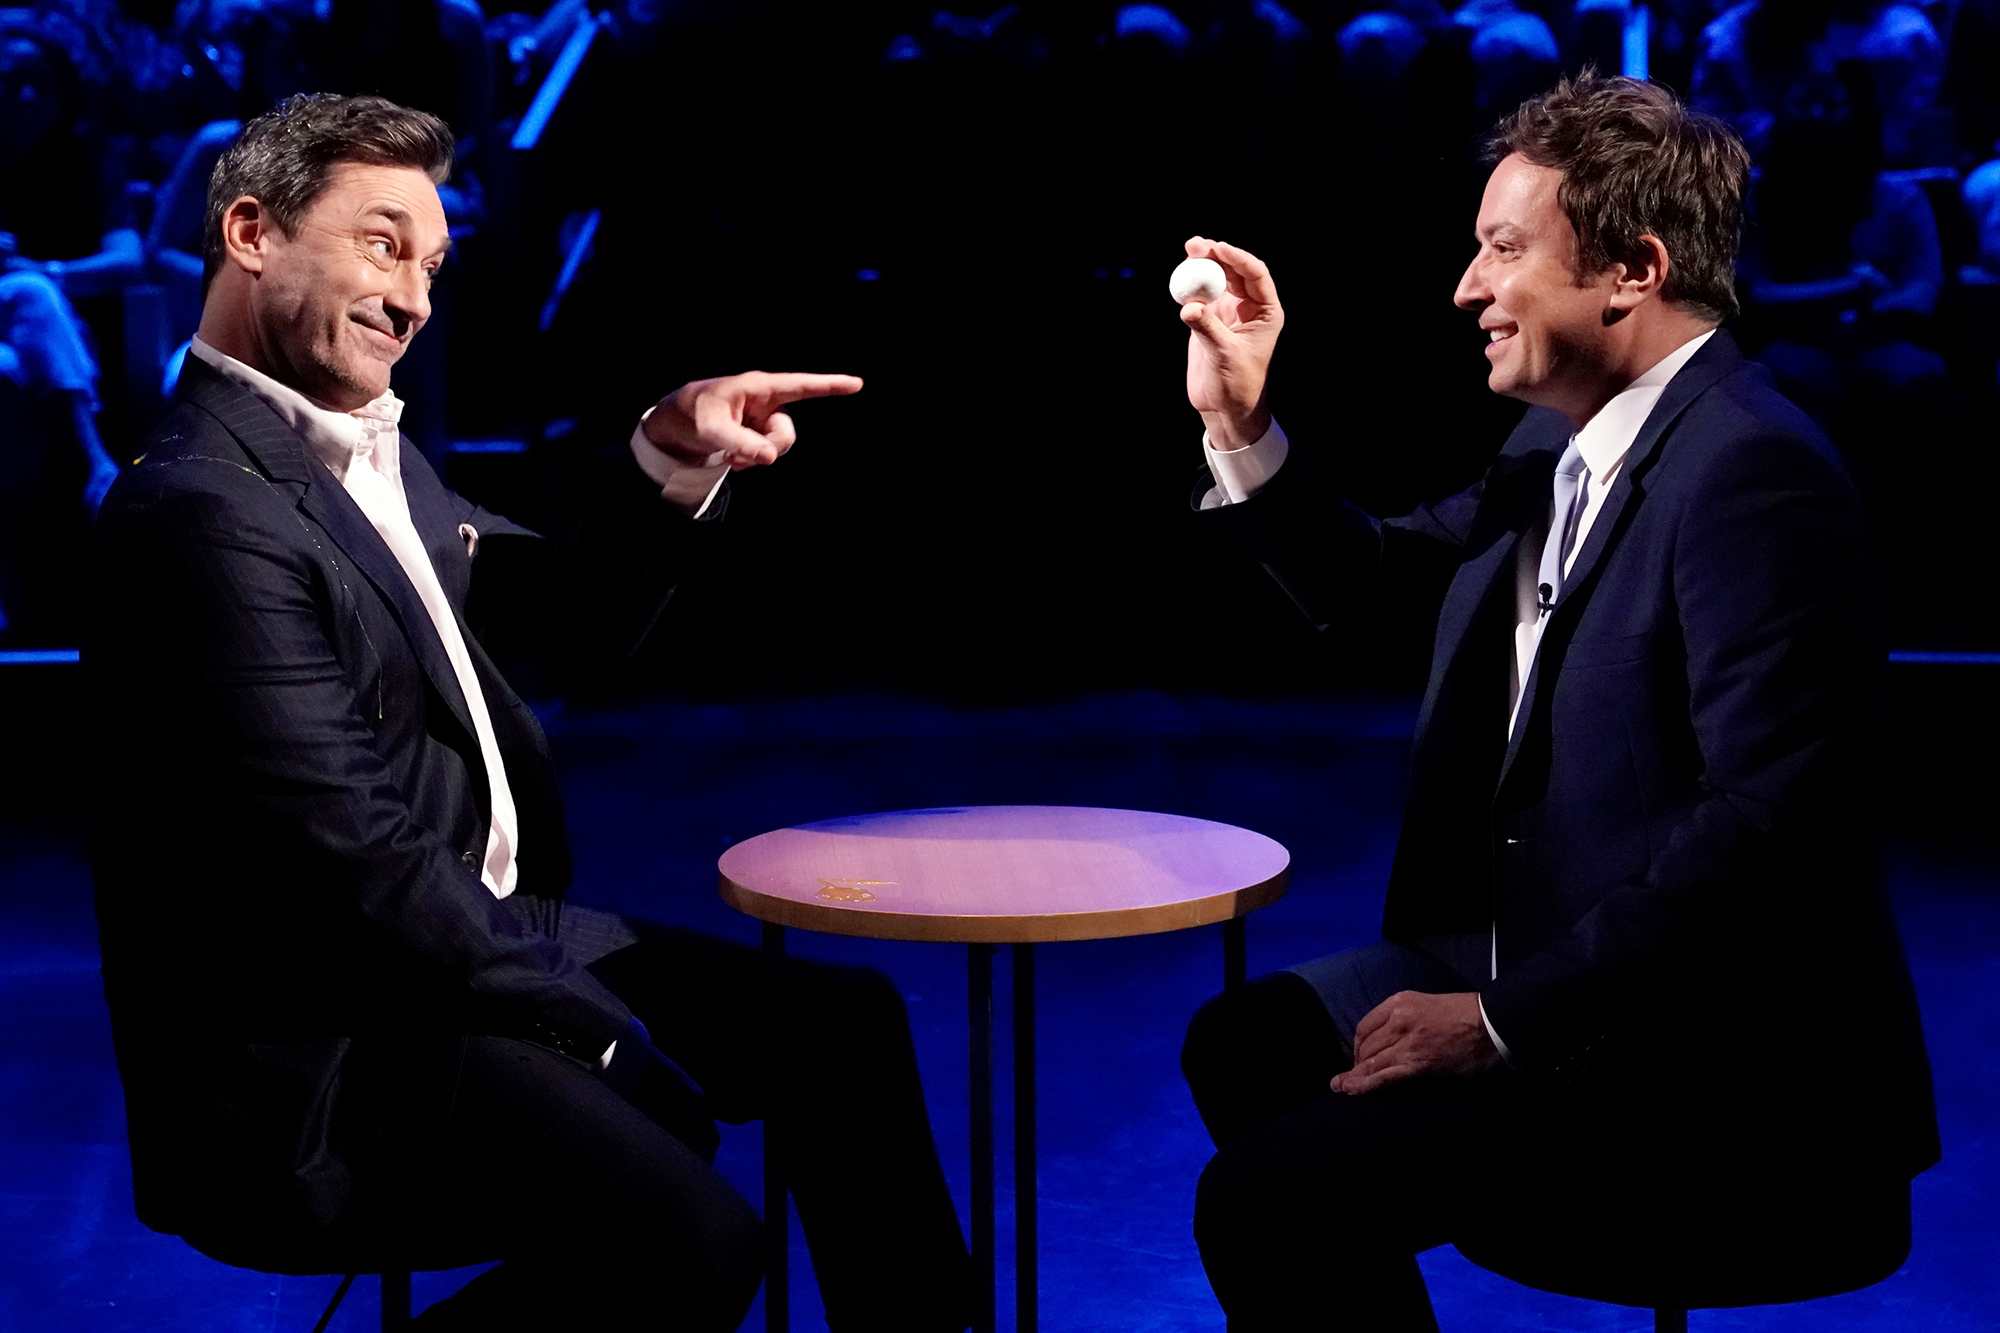 """THE TONIGHT SHOW STARRING JIMMY FALLON -- Episode 1486 -- Pictured: (l-r) Actor Jon Hamm and host Jimmy Fallon during """"Egg Russian Roulette"""" on Thursday, June 24, 2021"""